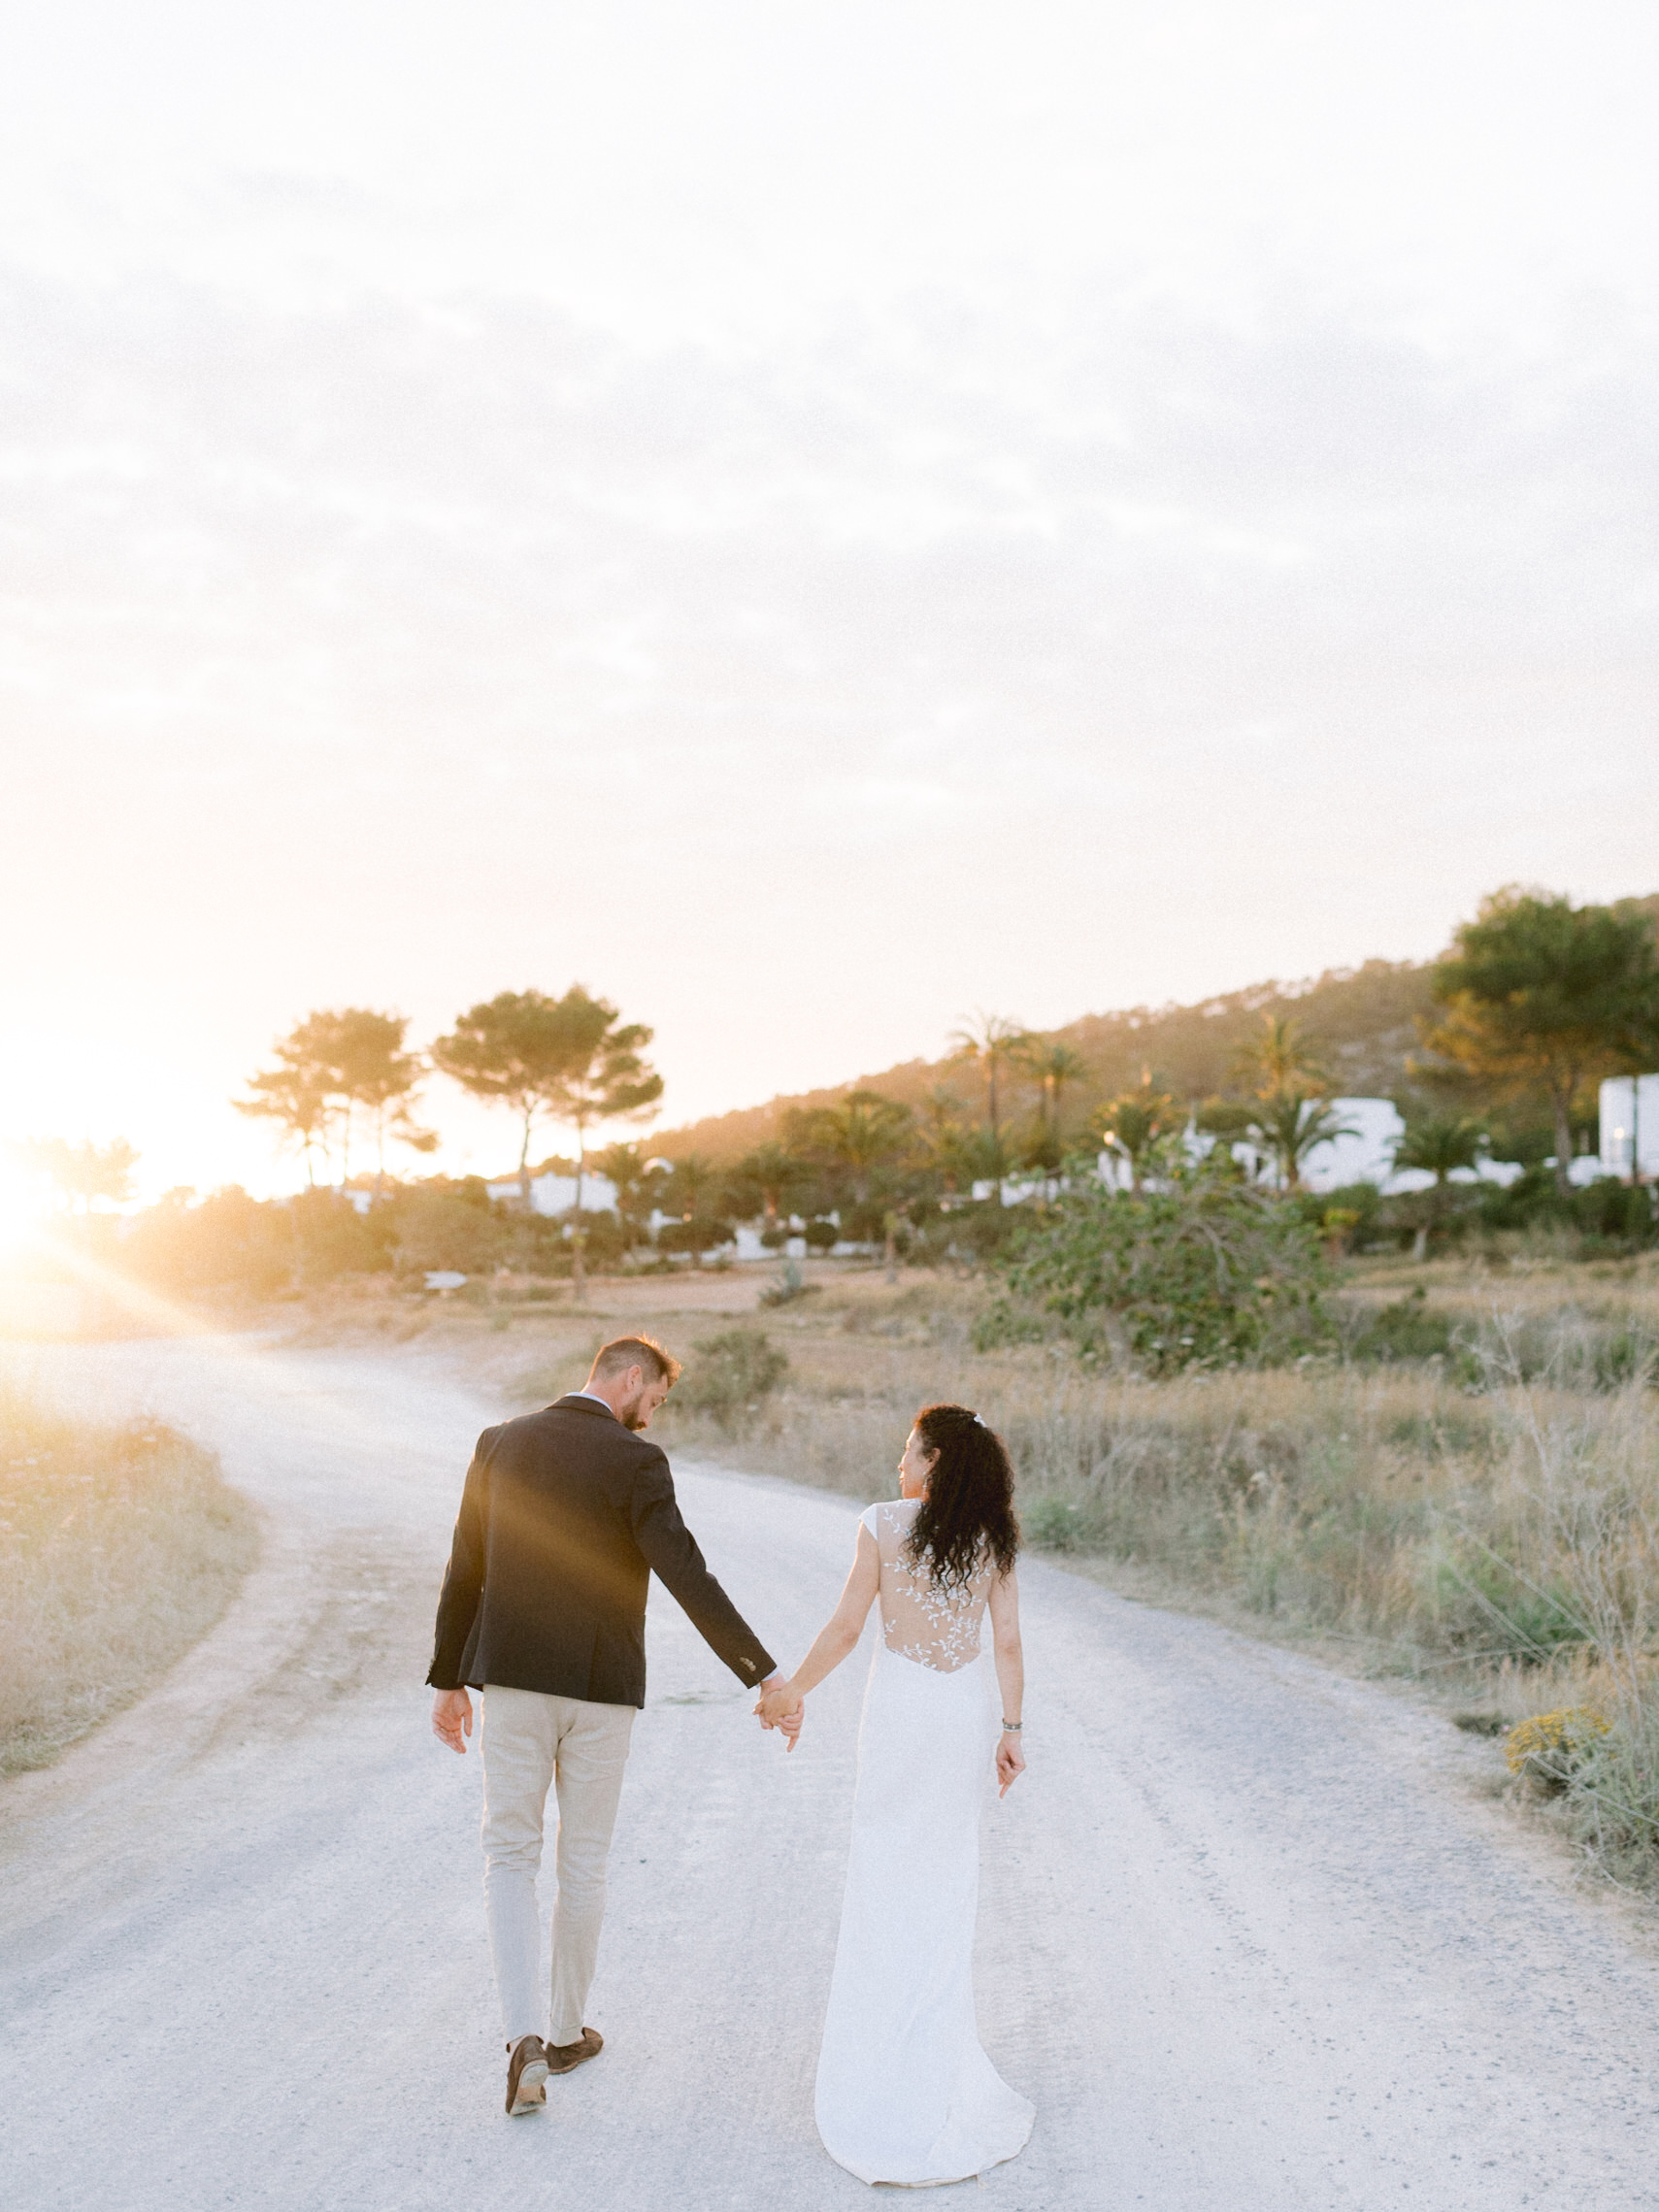 Wedding Photographer Ibiza, Youri Claessens Photography